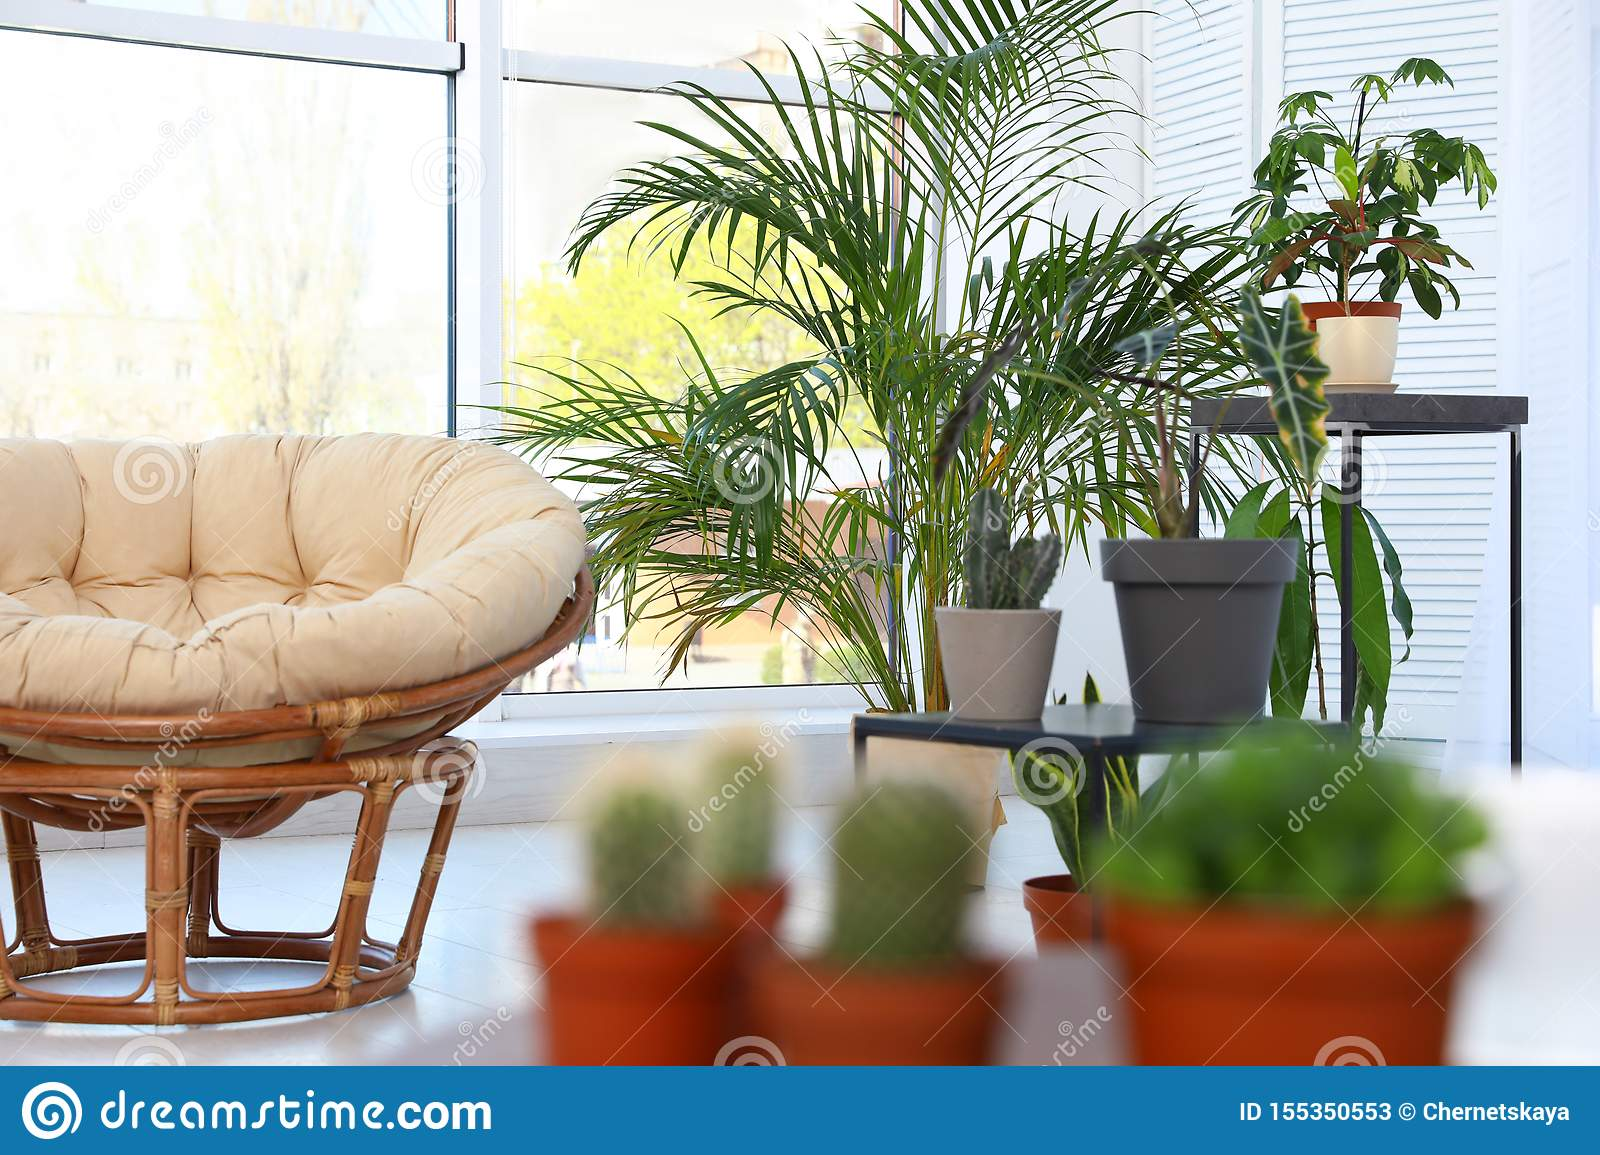 Living Room Interior With Chair And Indoor Plants Trendy Home Decor Stock Image Image Of Cozy Floral 155350553